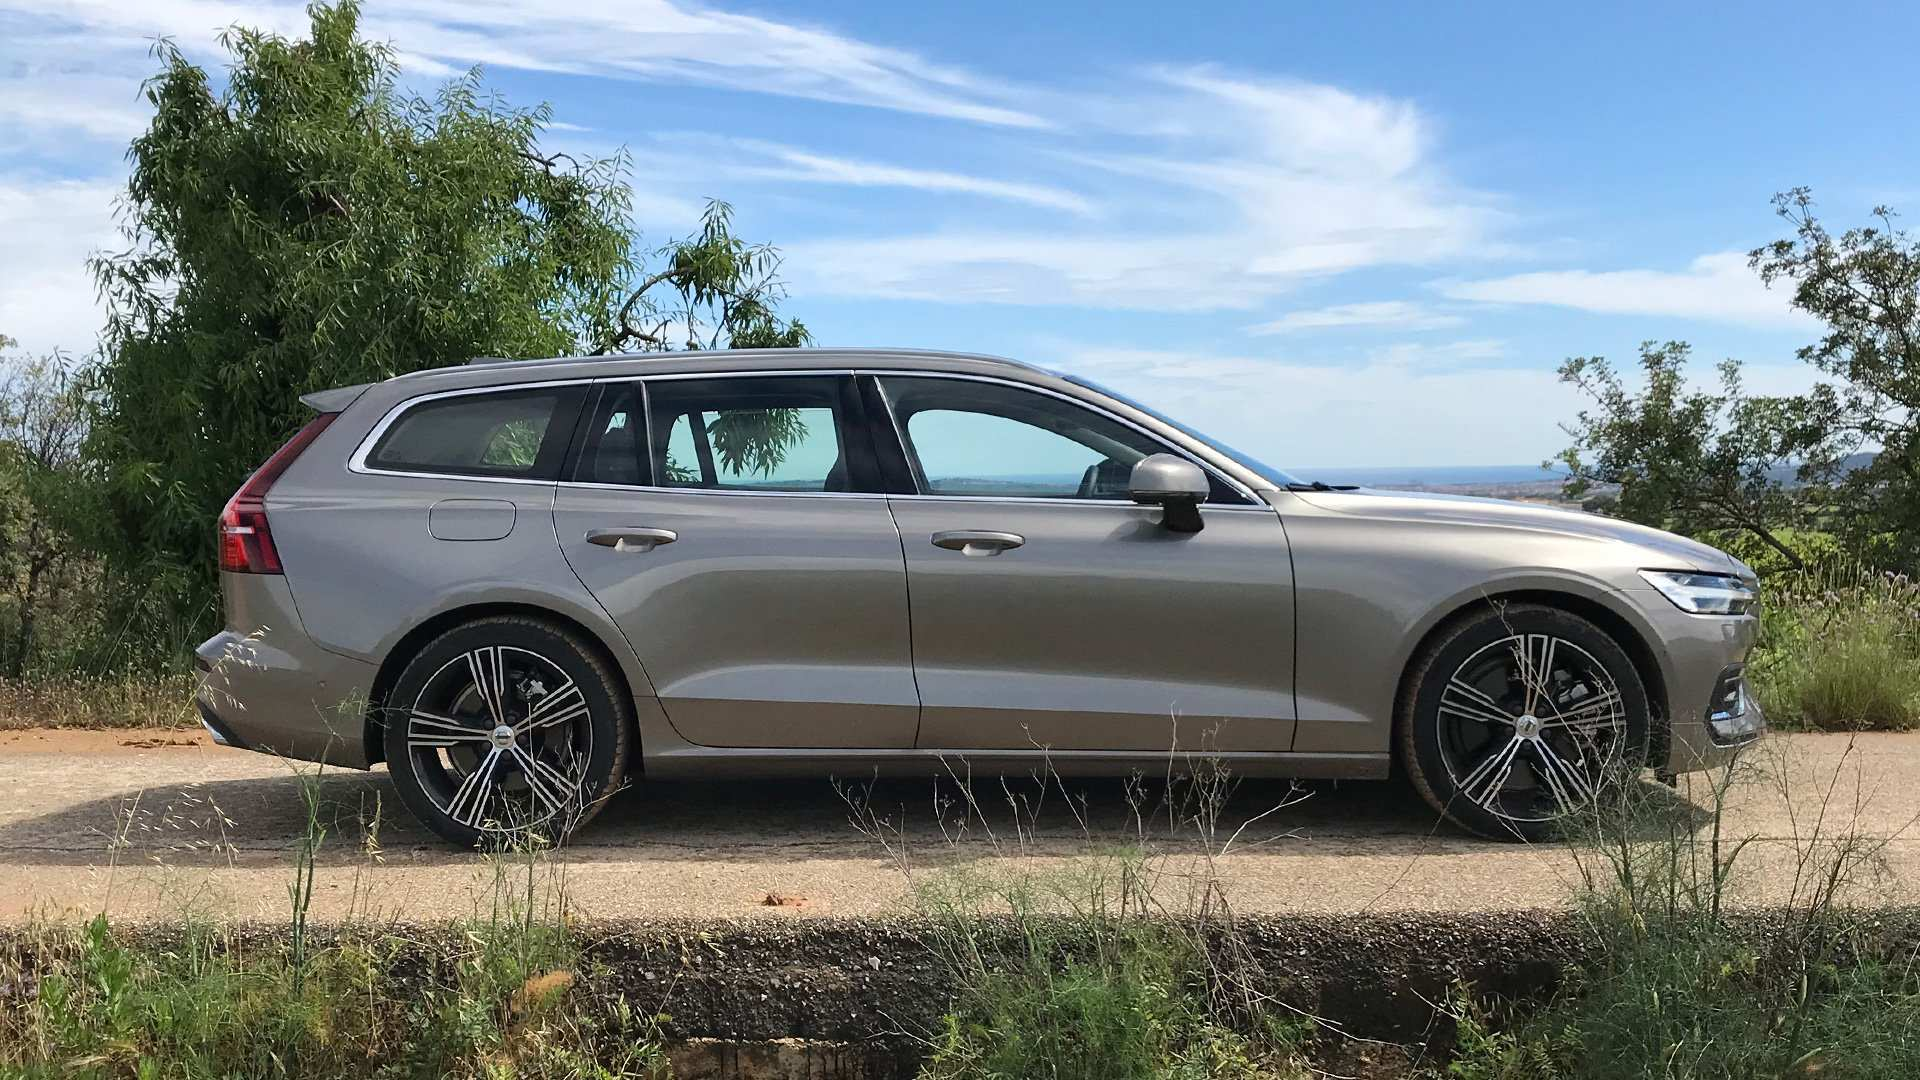 43 Best Review New Volvo V60 2019 Ground Clearance New Engine Reviews with New Volvo V60 2019 Ground Clearance New Engine